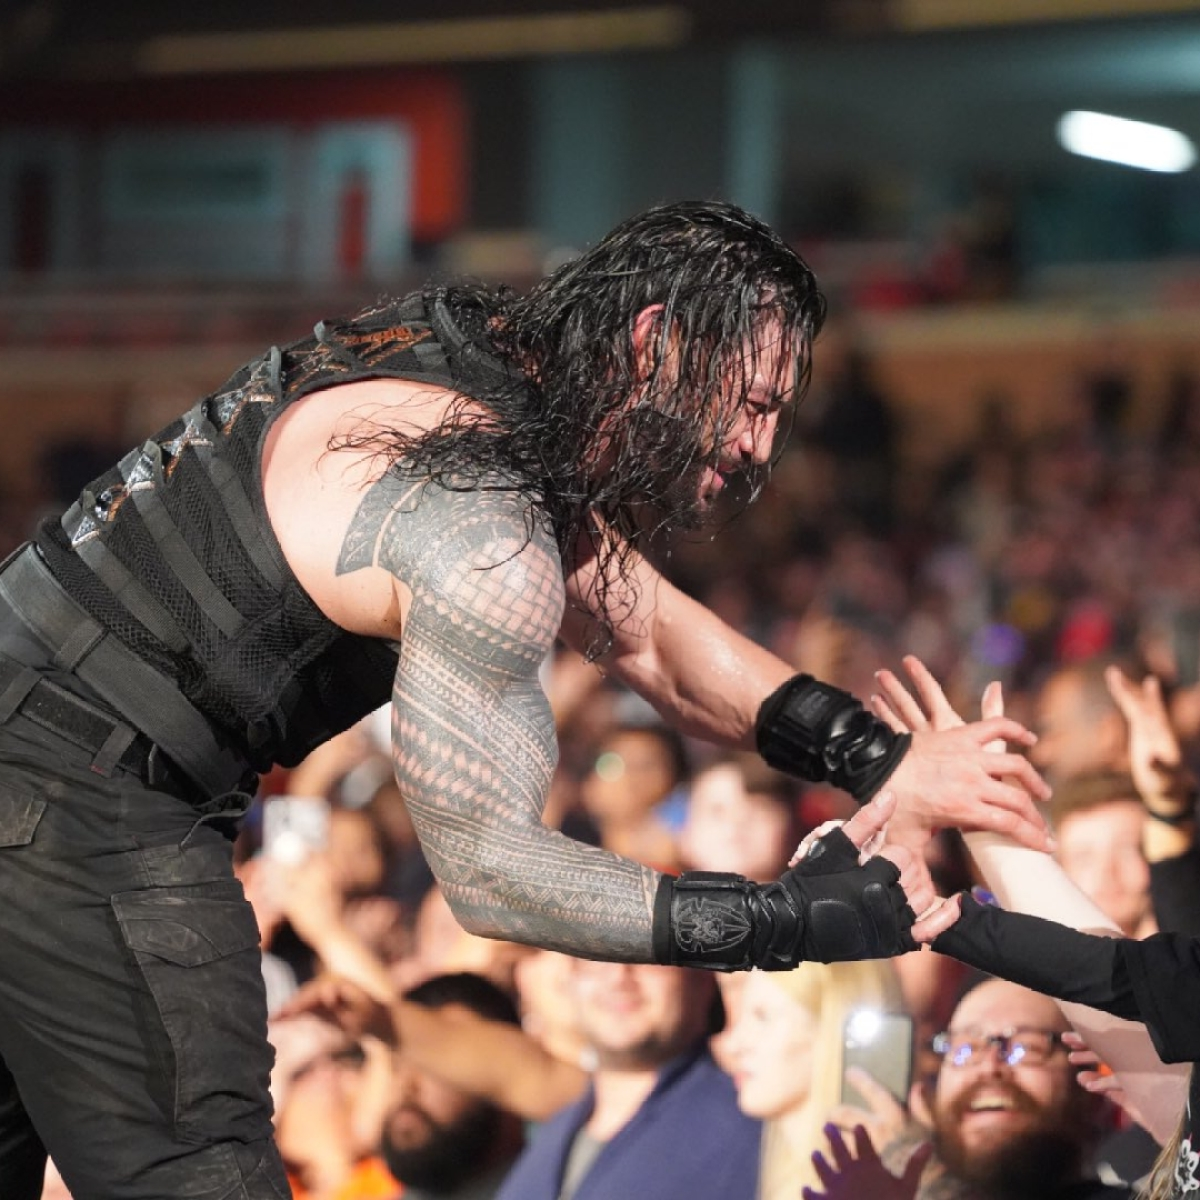 WrestleMania 36: Roman Reigns backs out of the 'Show of Shows' due to medical history with leukemia